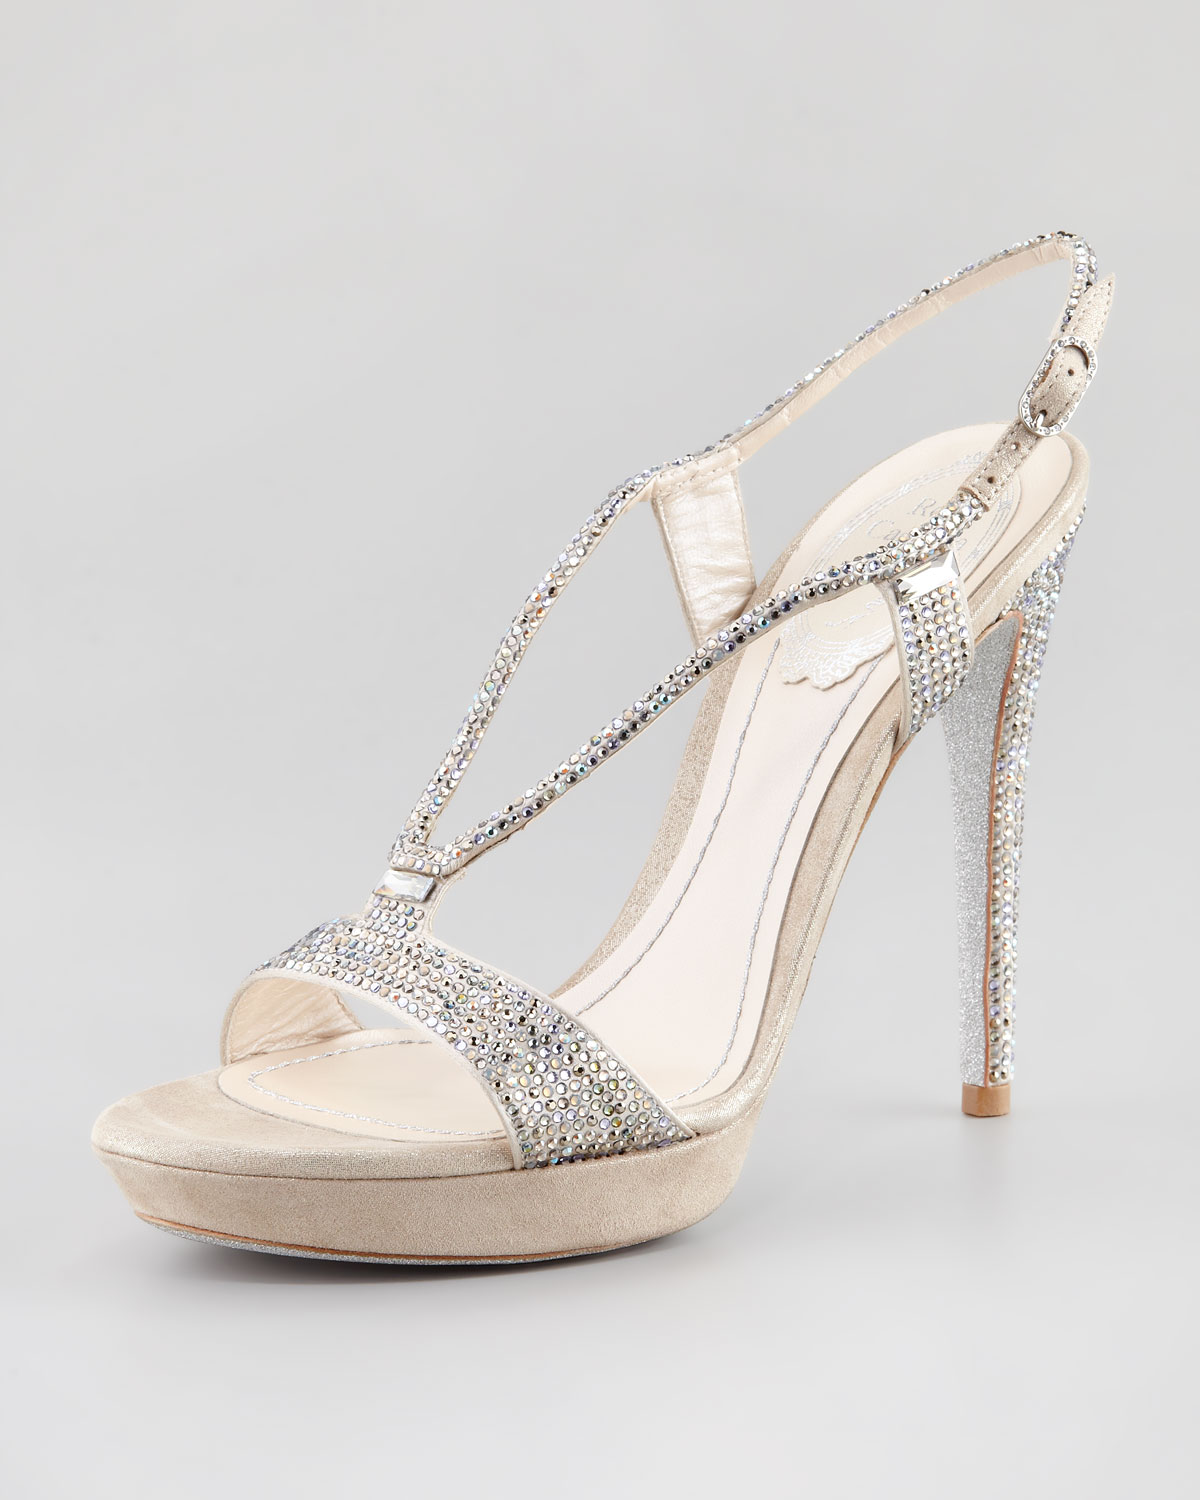 RENé CAOVILLA Suede sandals with crystals BTHVNtQpa